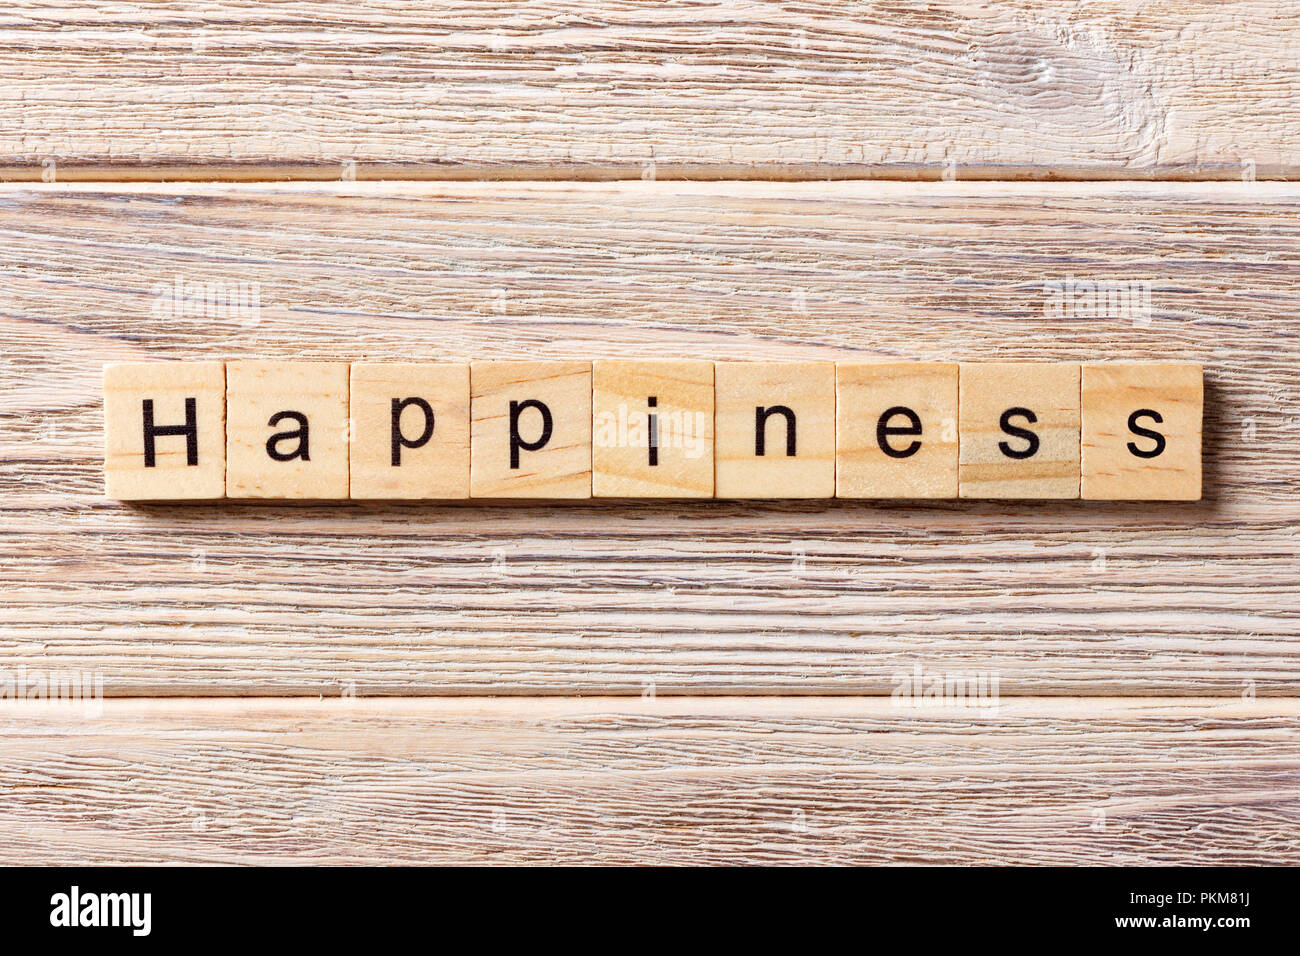 Happiness word written on wood block. Happiness text on table, concept. - Stock Image